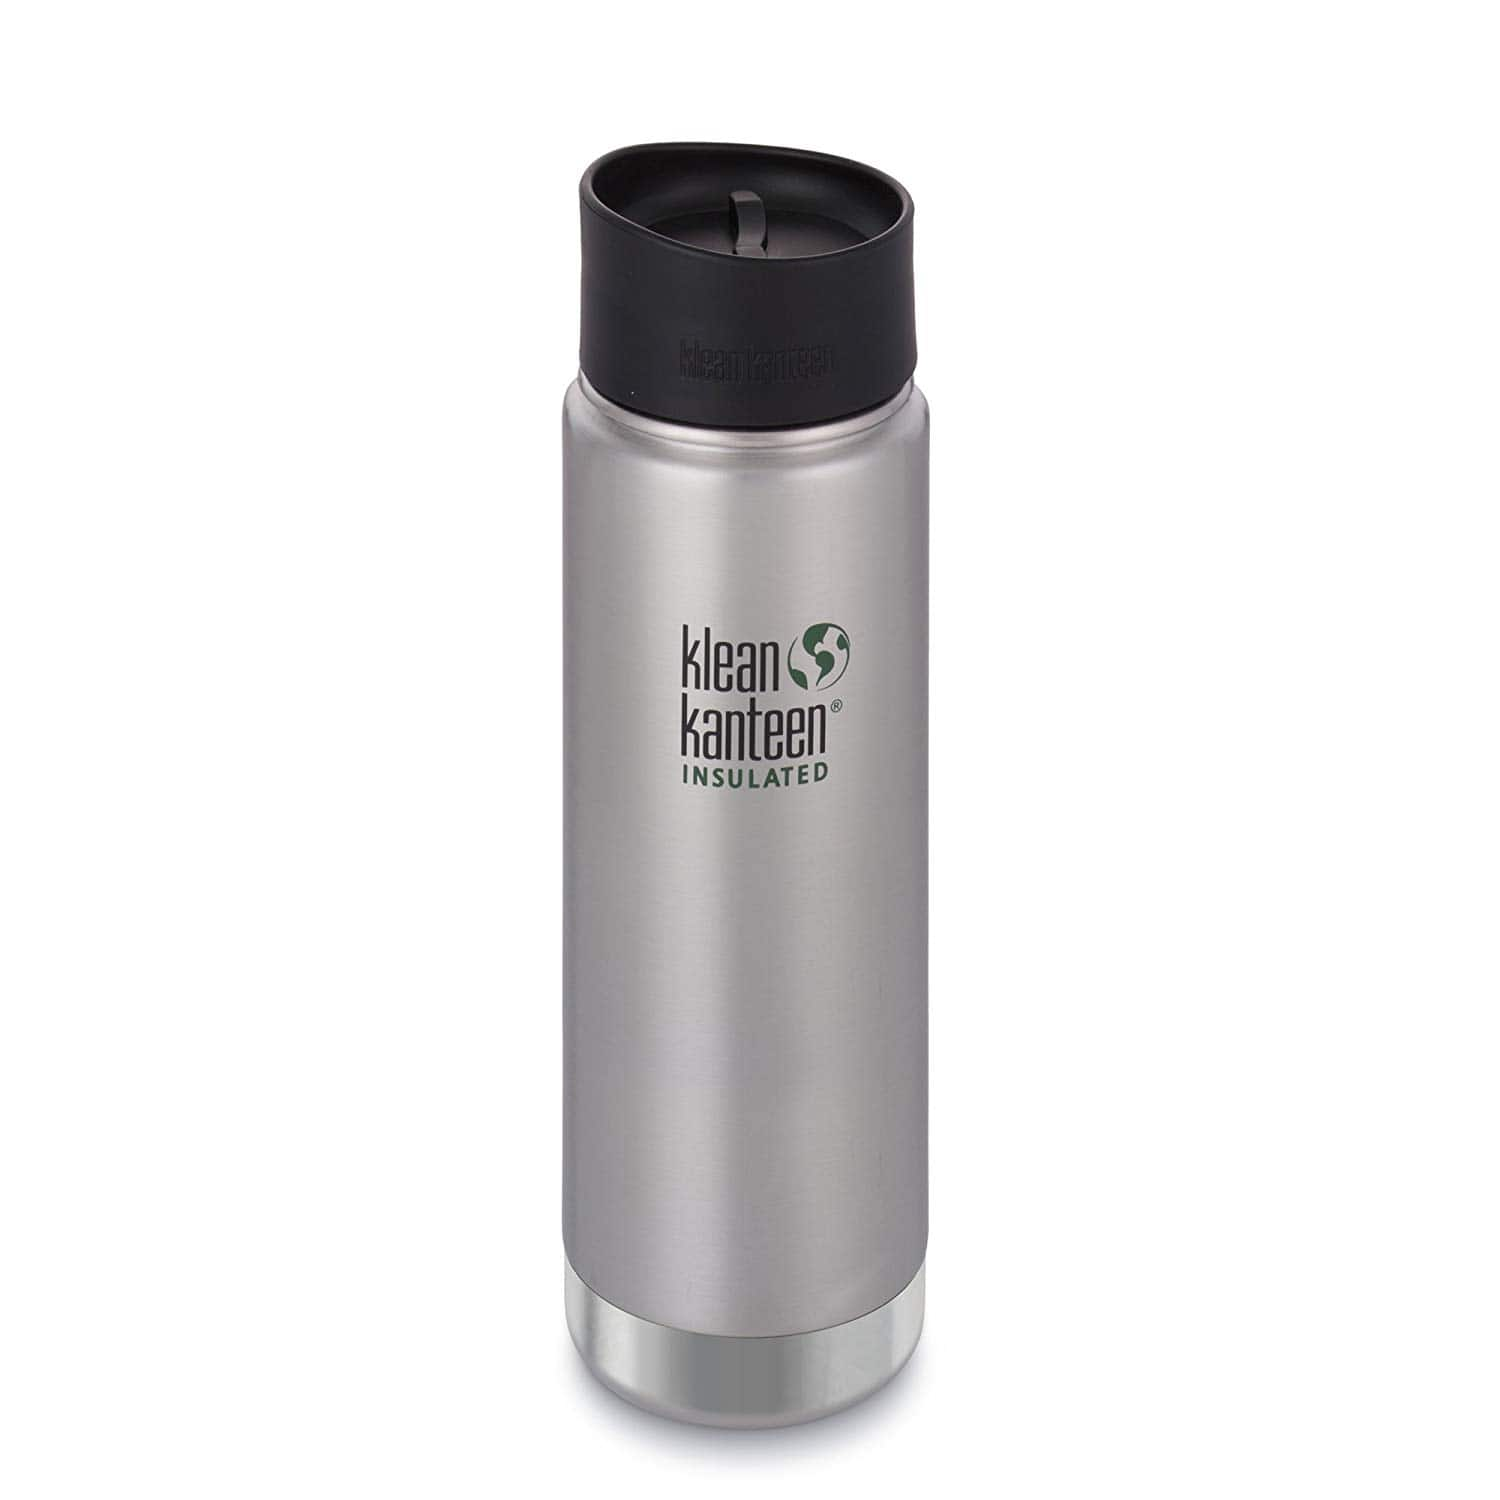 """Klean Kanteen 16oz. Wide """"Double Wall"""" Vacuum Insulated Stainless Steel Coffee Mug with Leak Proof Café Cap 2.0 $15.39 - Amazon"""